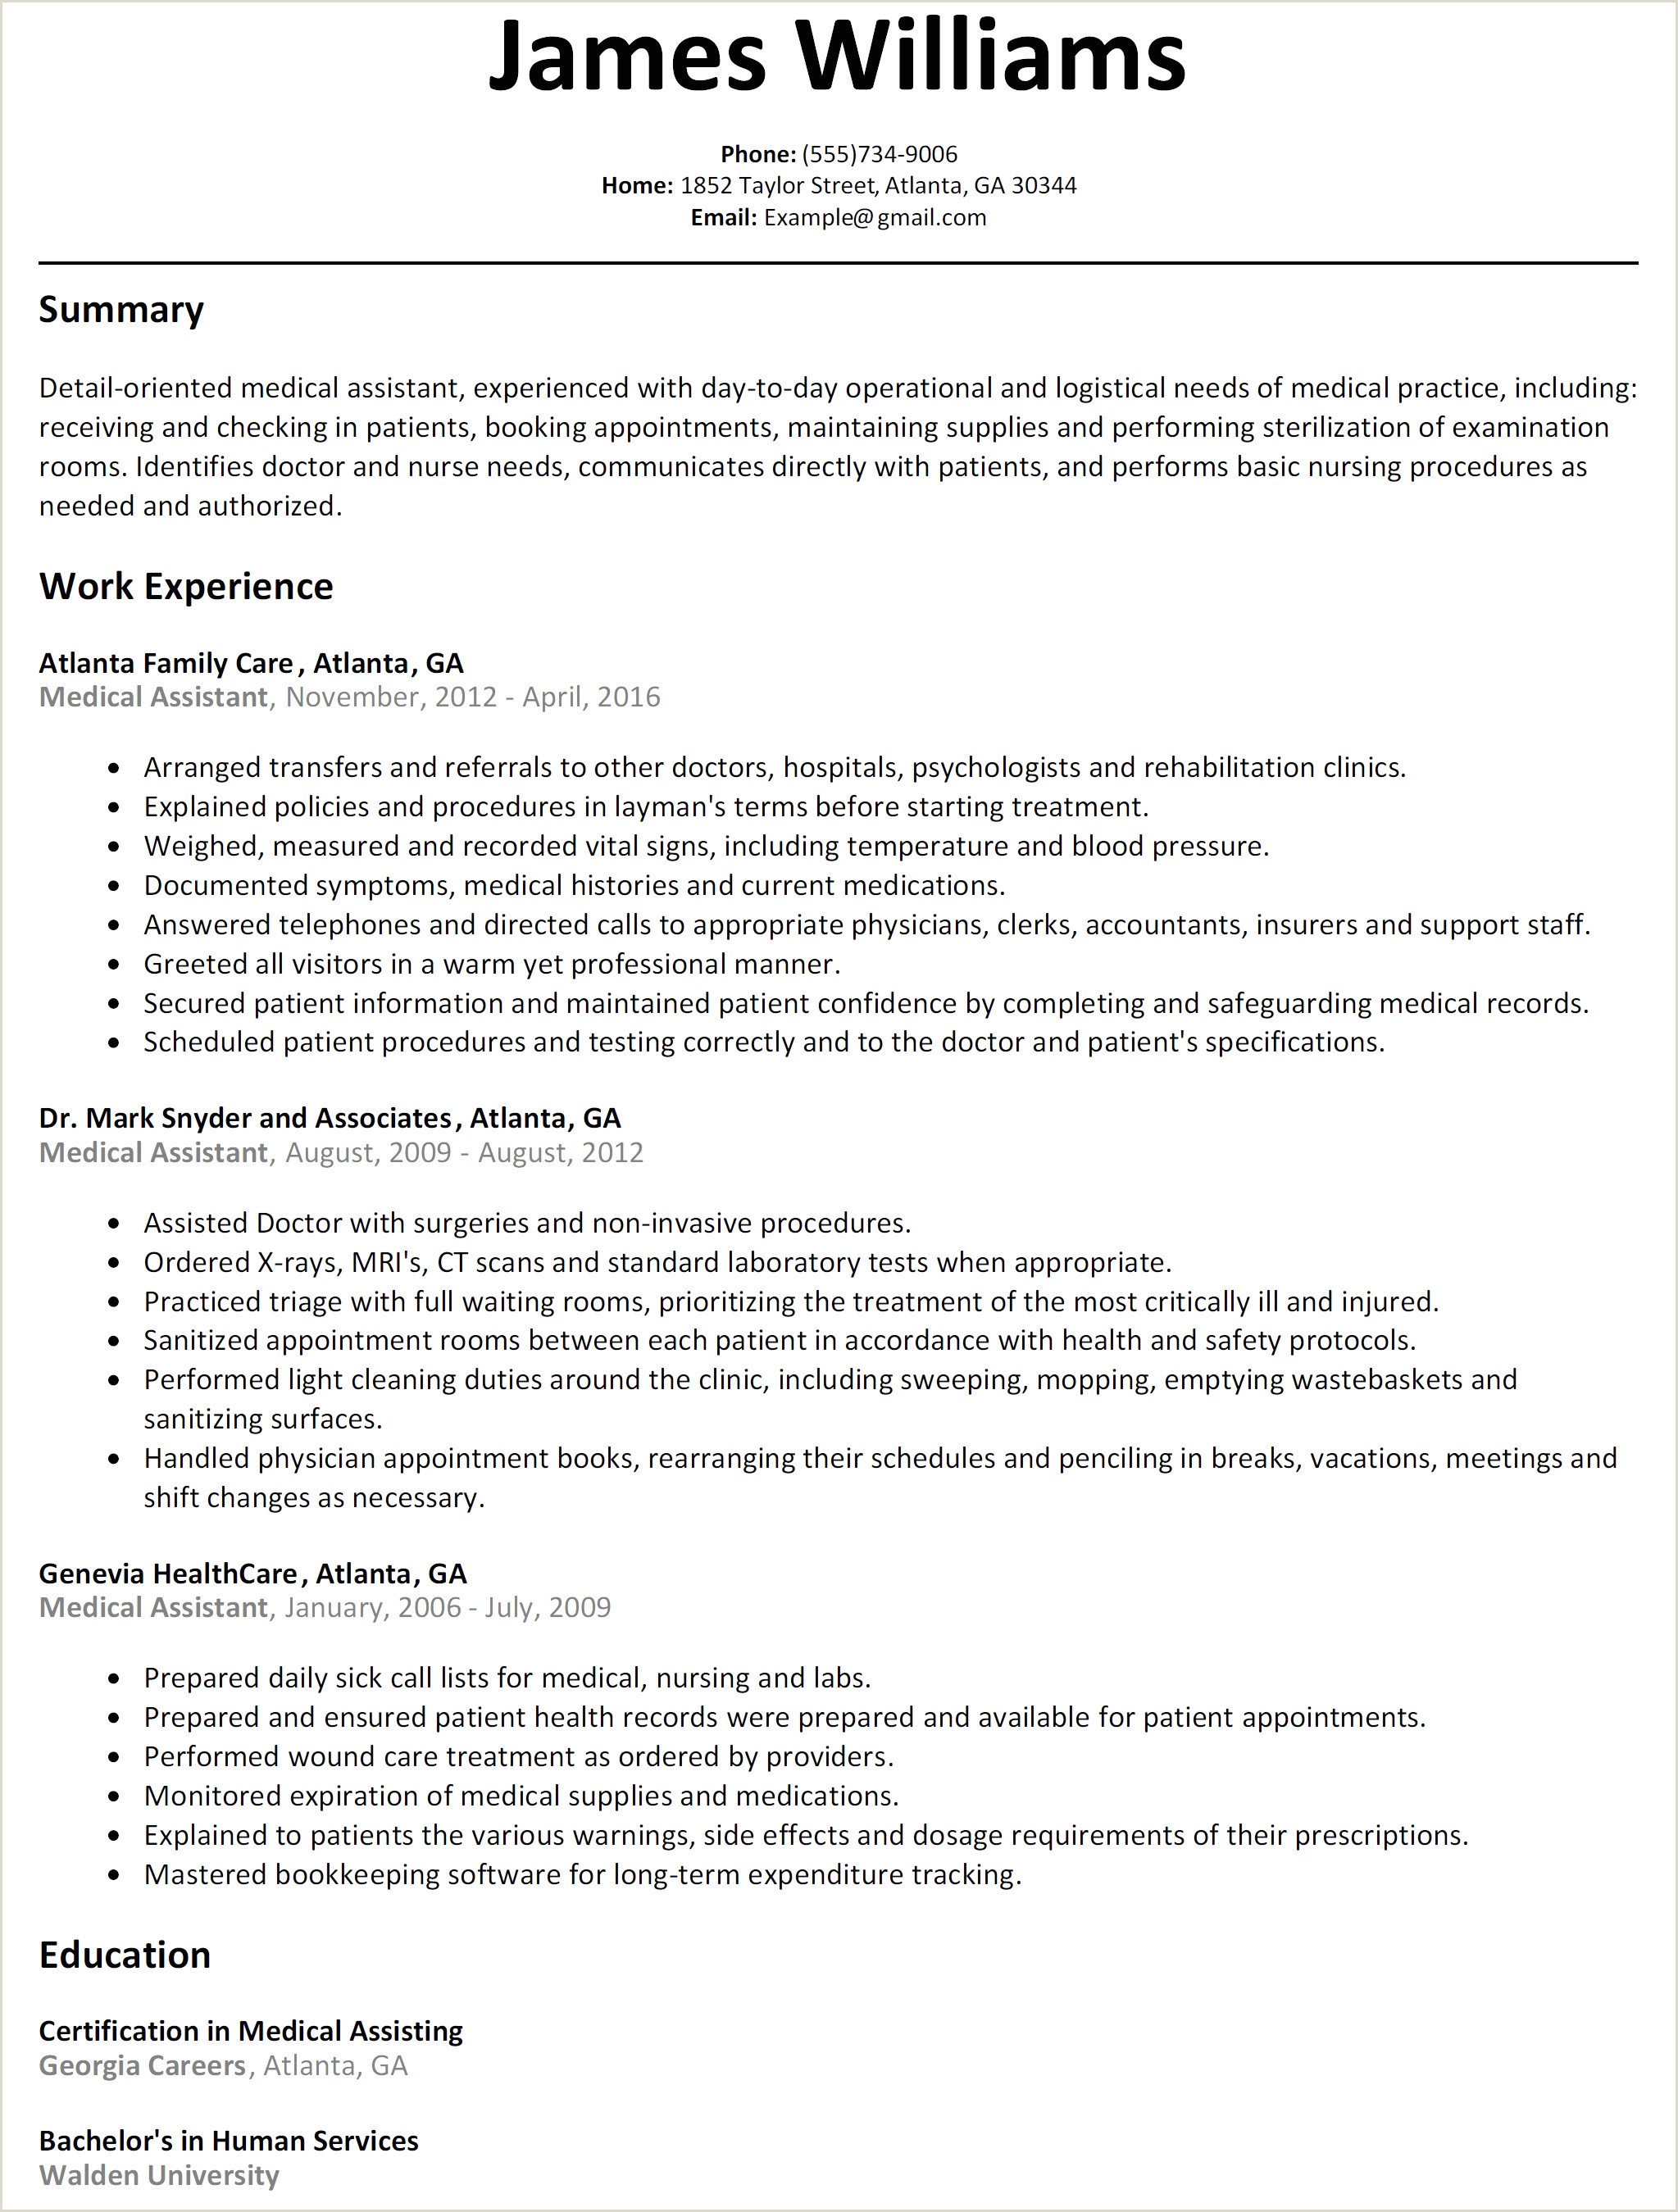 Child Care Resume Sample No Experience Elegant No Work Experience Resume Example